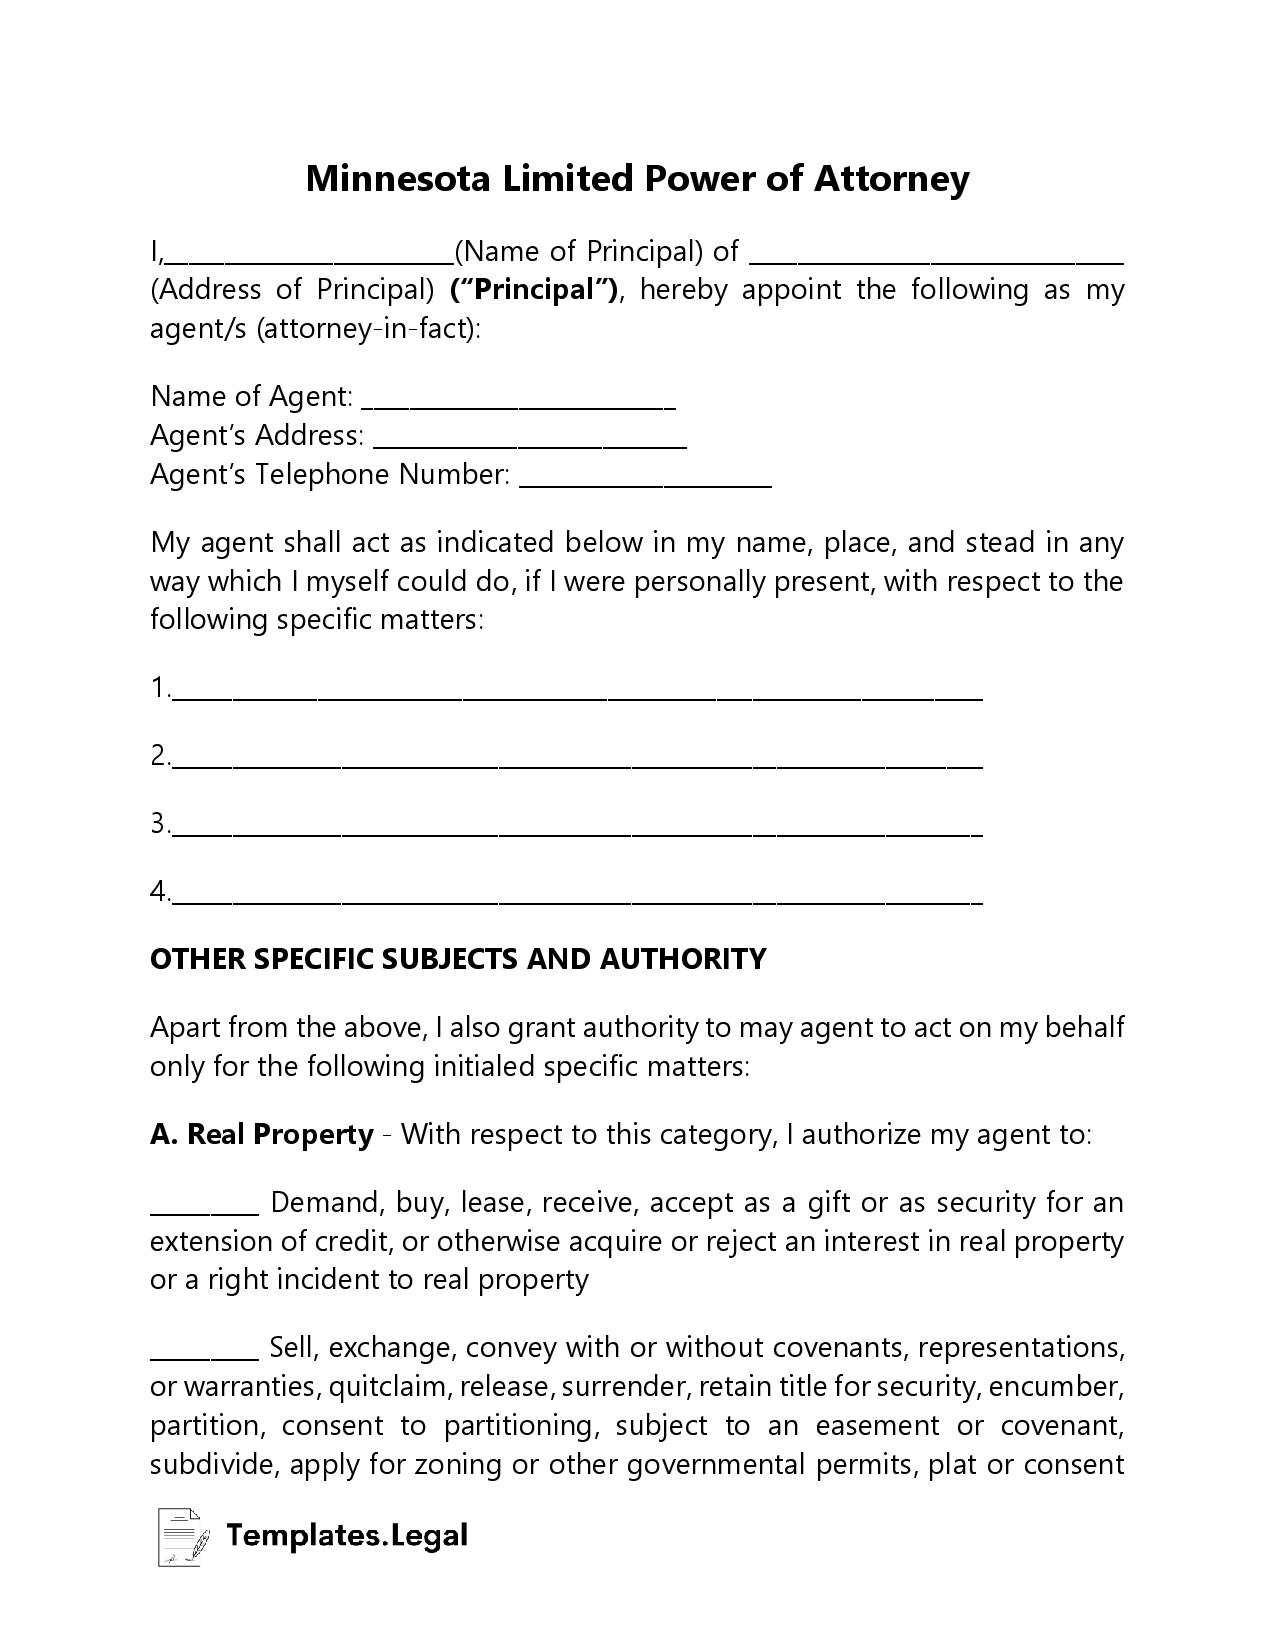 Minnesota Limited Power of Attorney - Templates.Legal